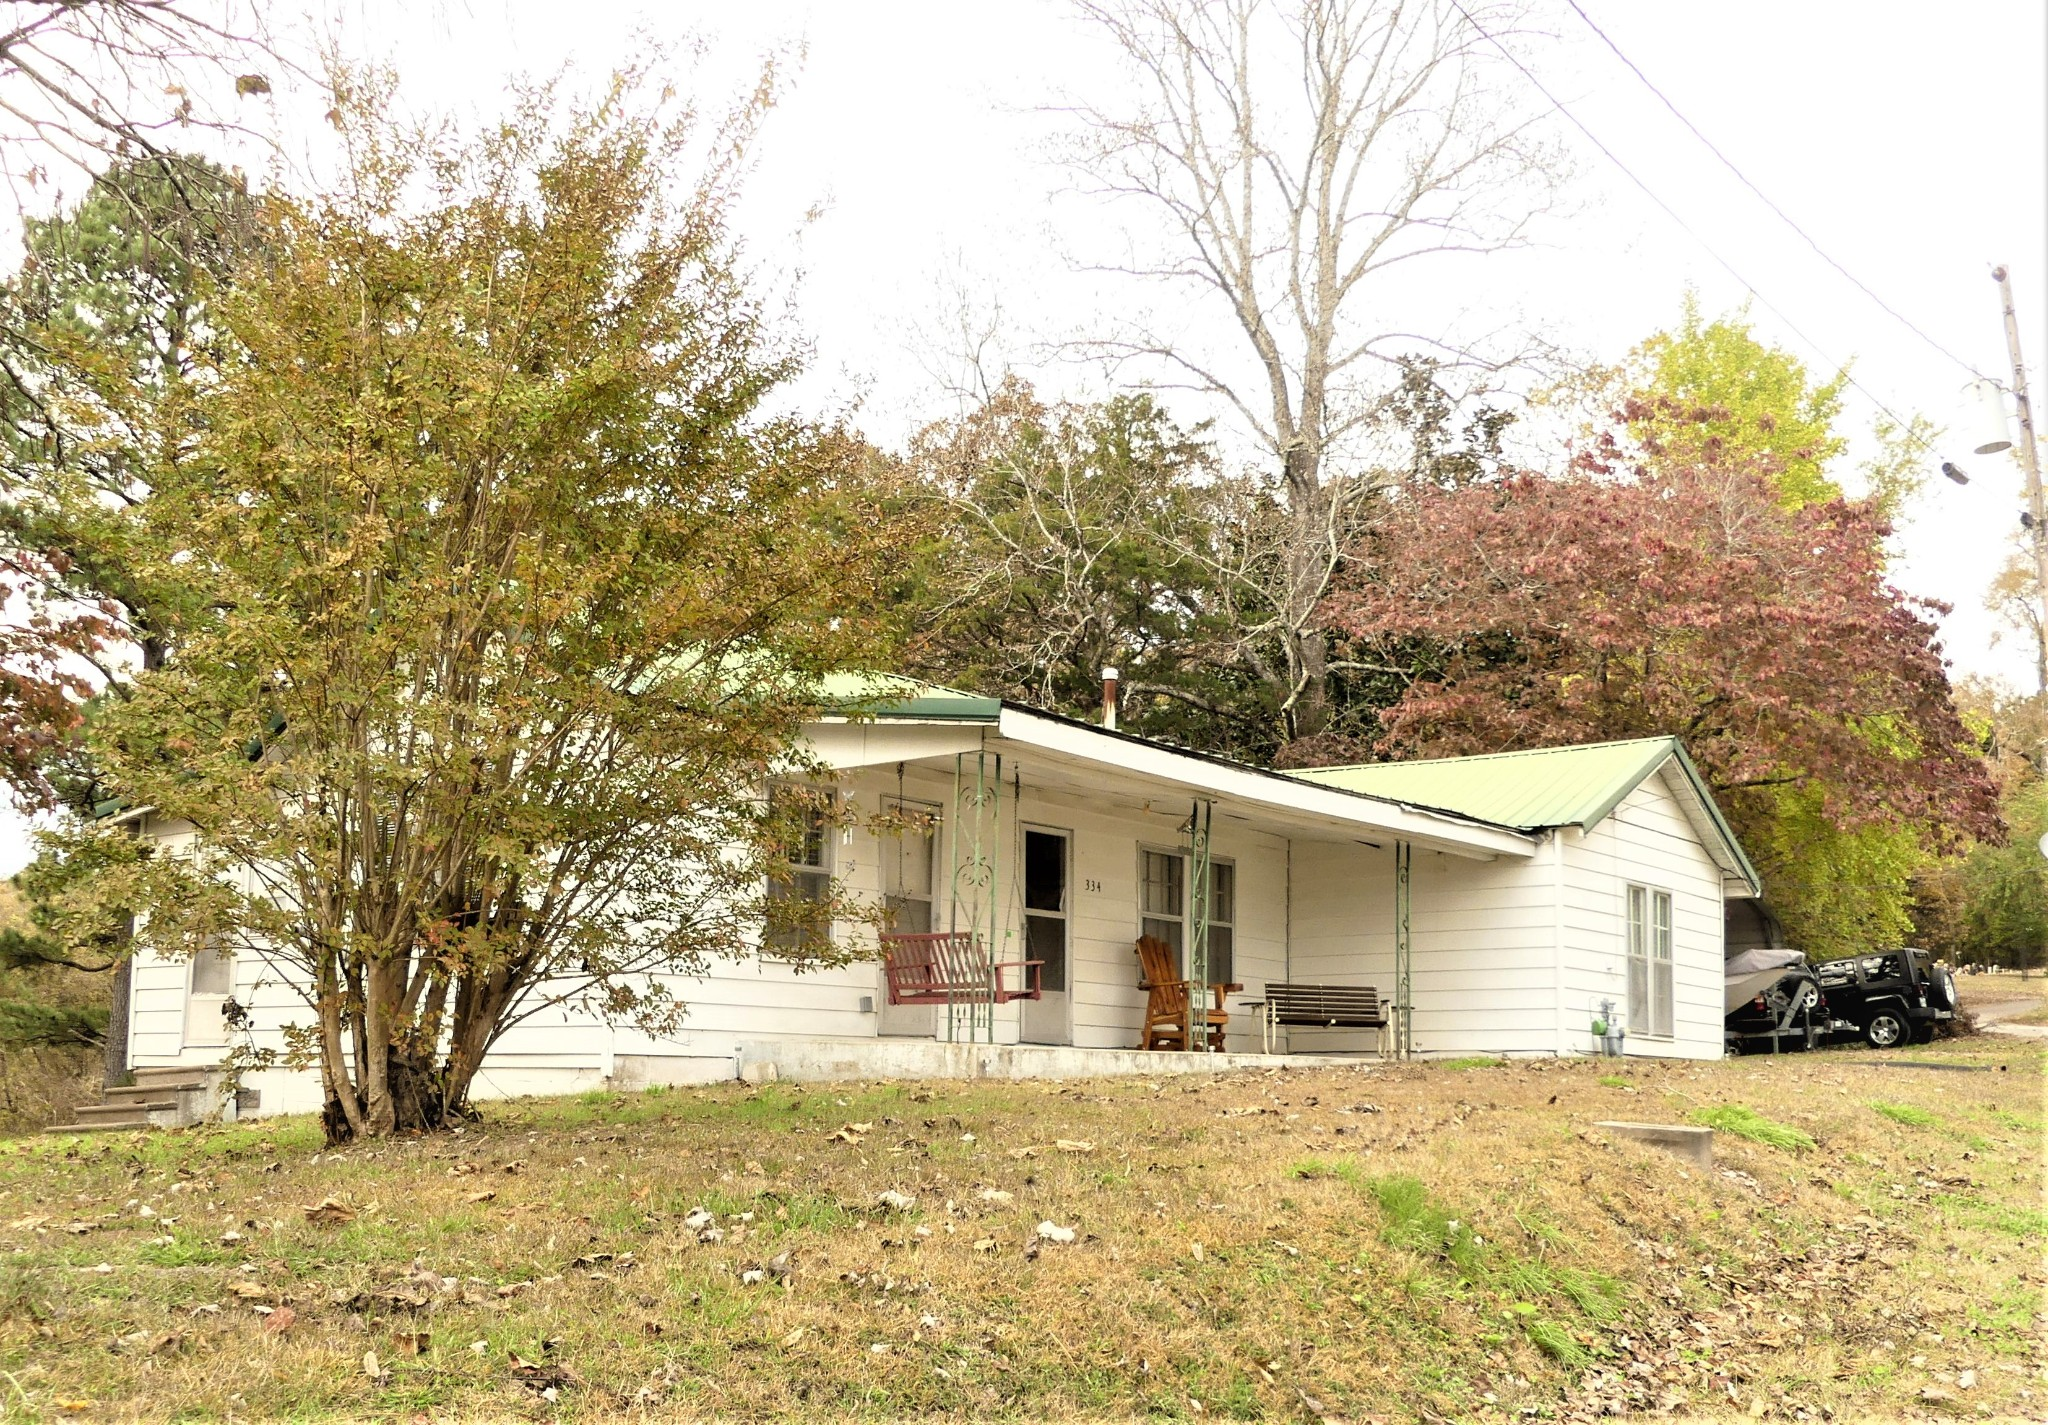 334 Perryville Cem Rd, Parsons, TN 38363 - Parsons, TN real estate listing